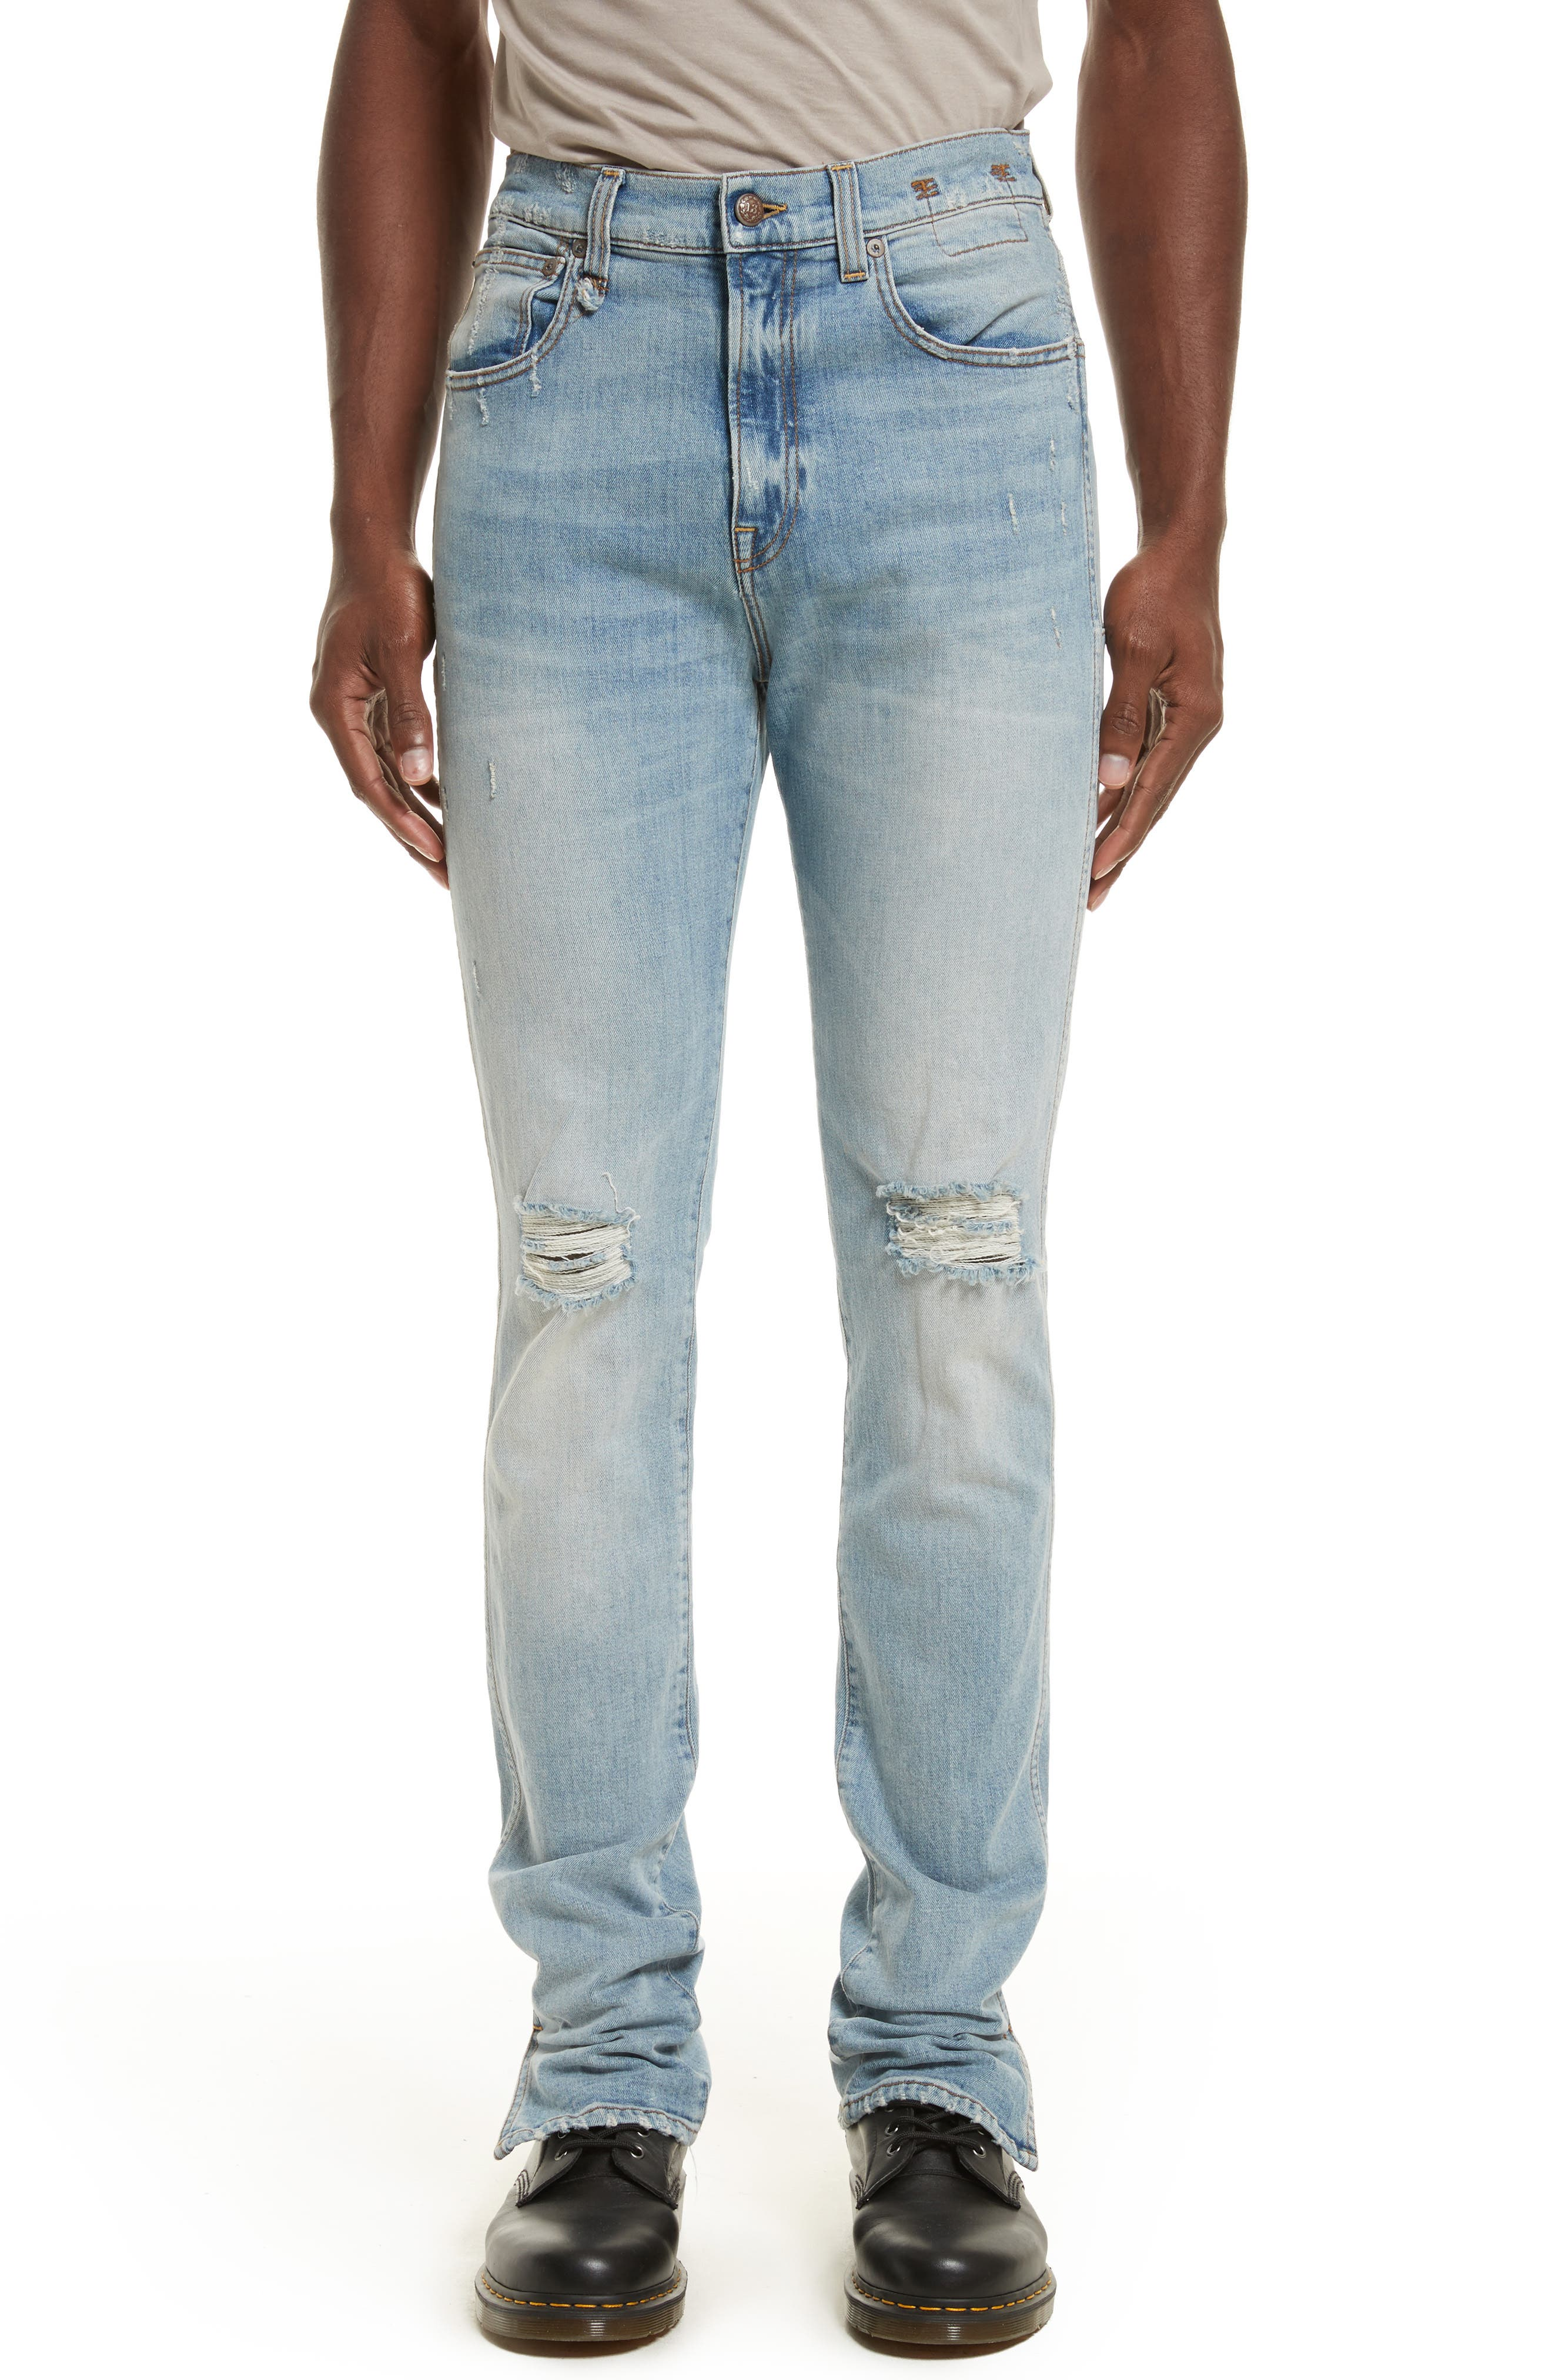 Deacon Skate Skinny Fit Jeans,                             Main thumbnail 1, color,                             400